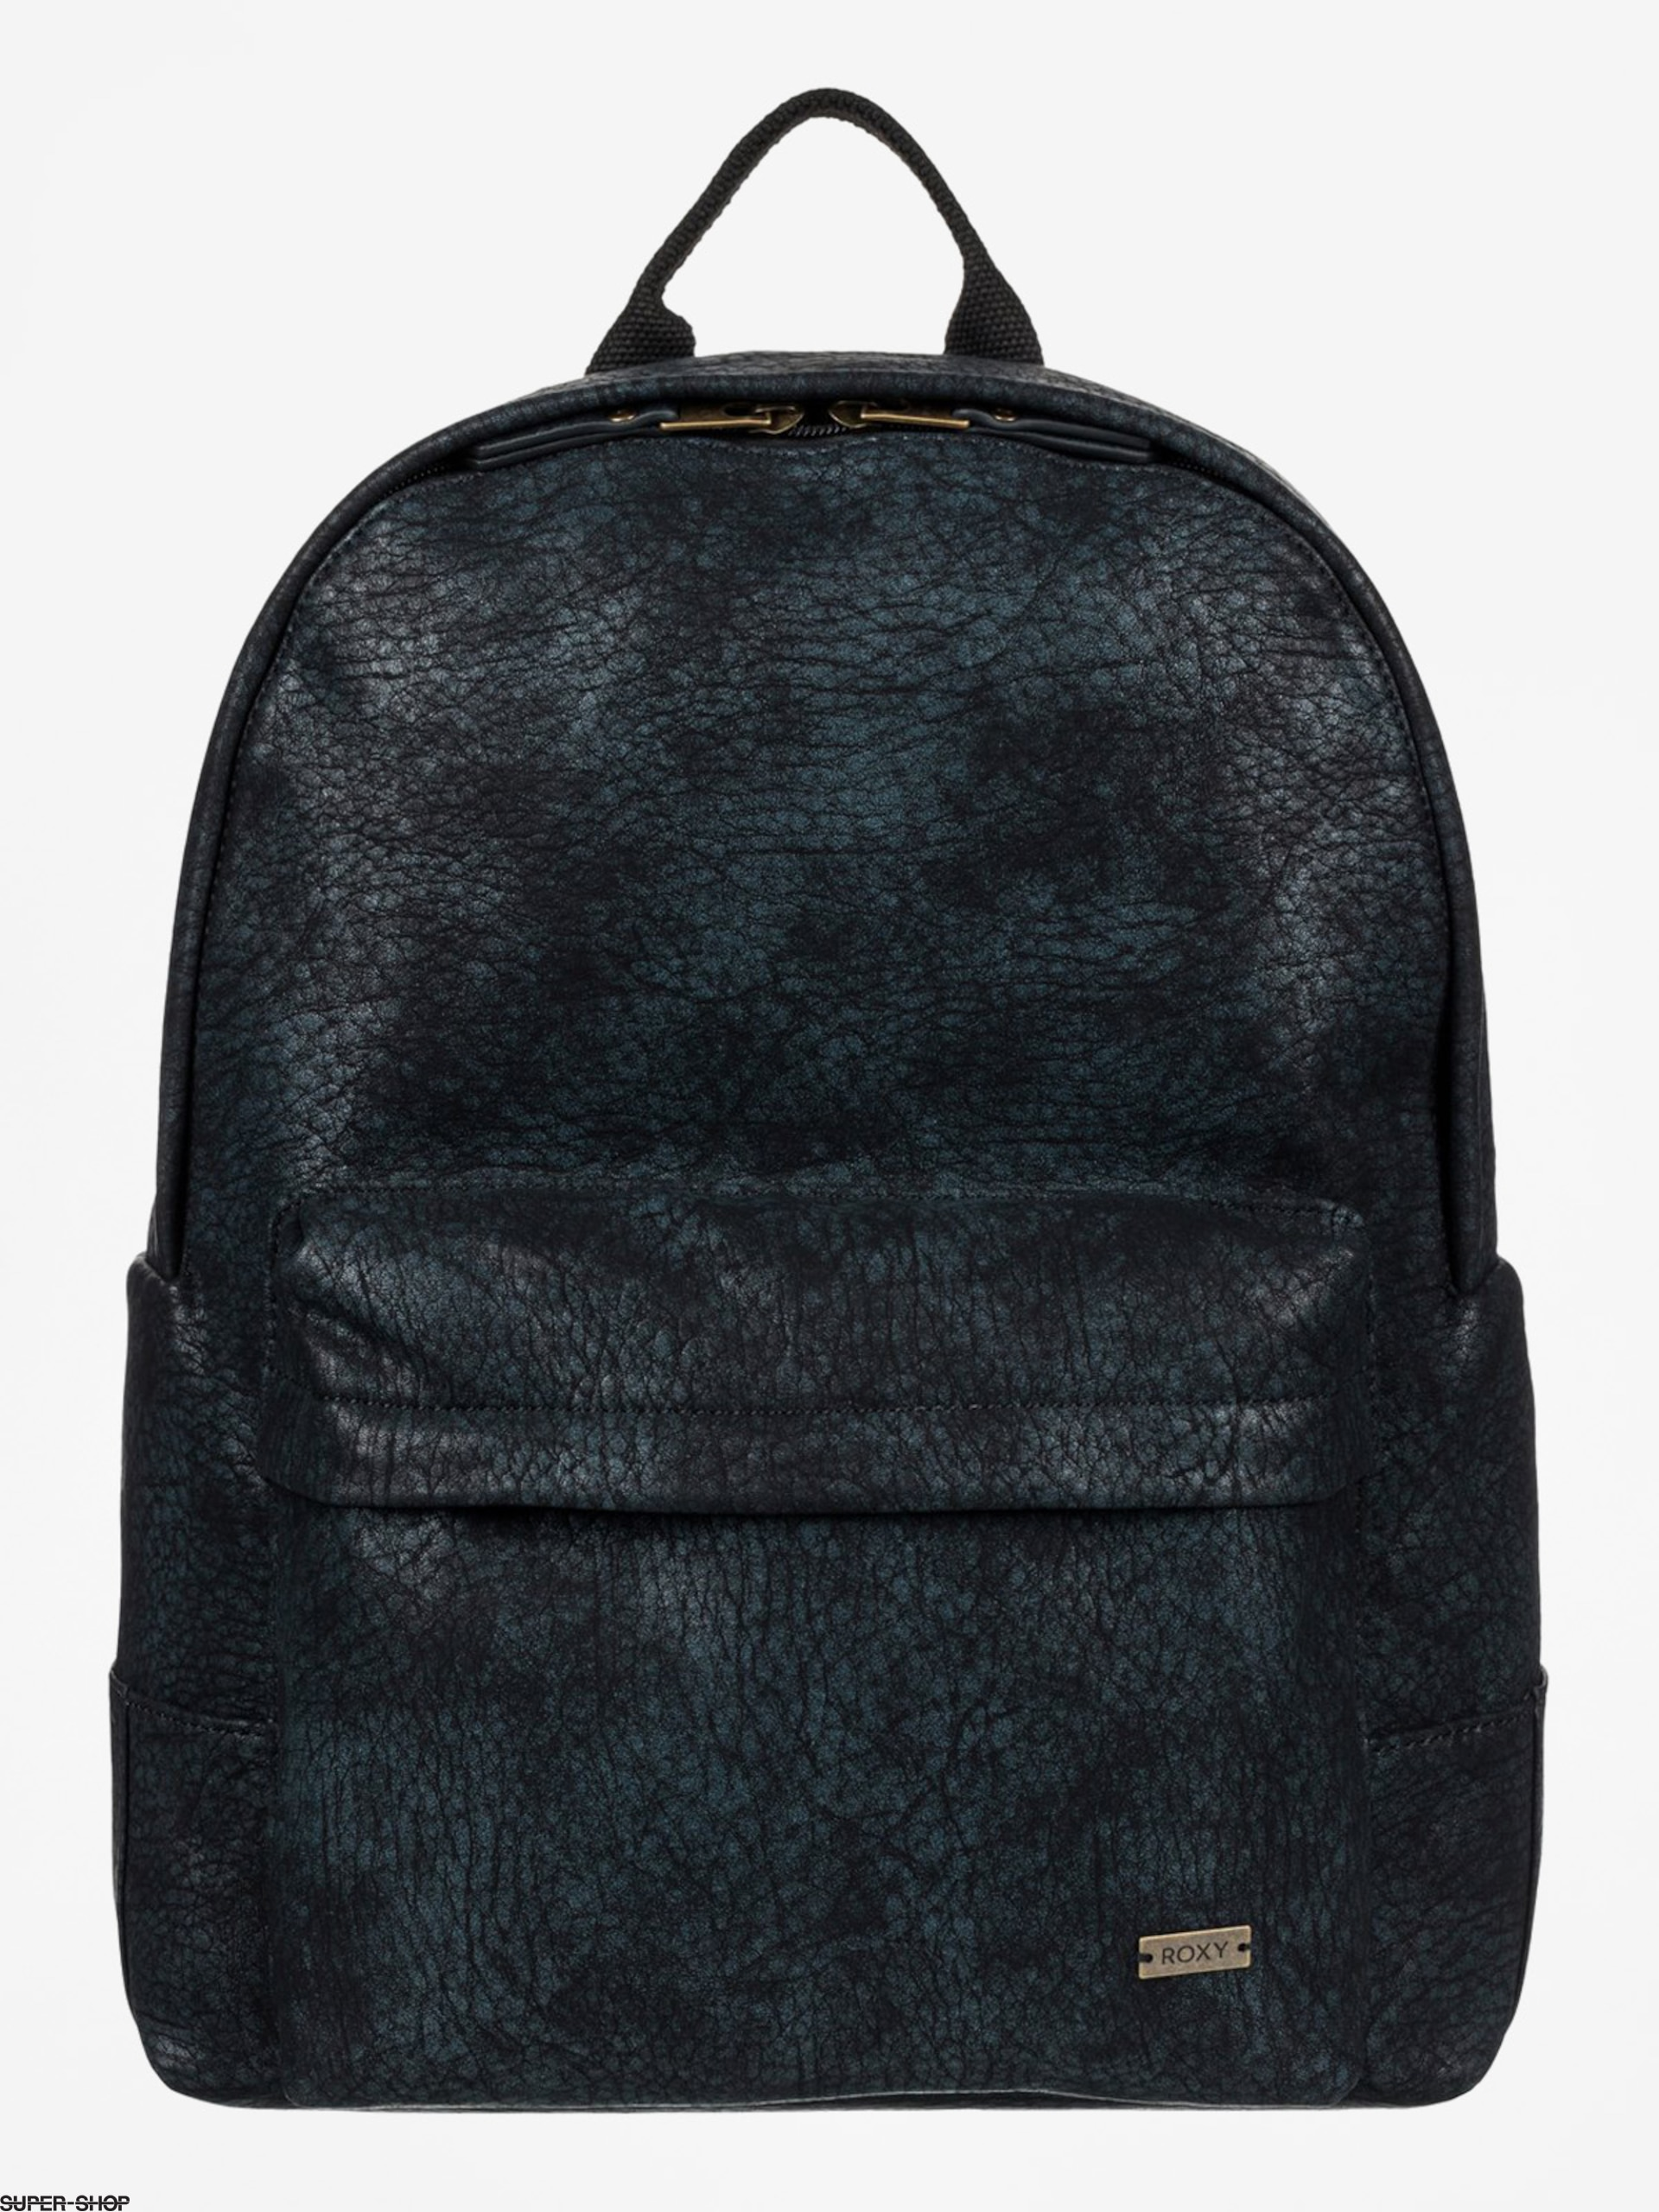 Roxy Rucksack Nothing Like Wmn (anthracite)